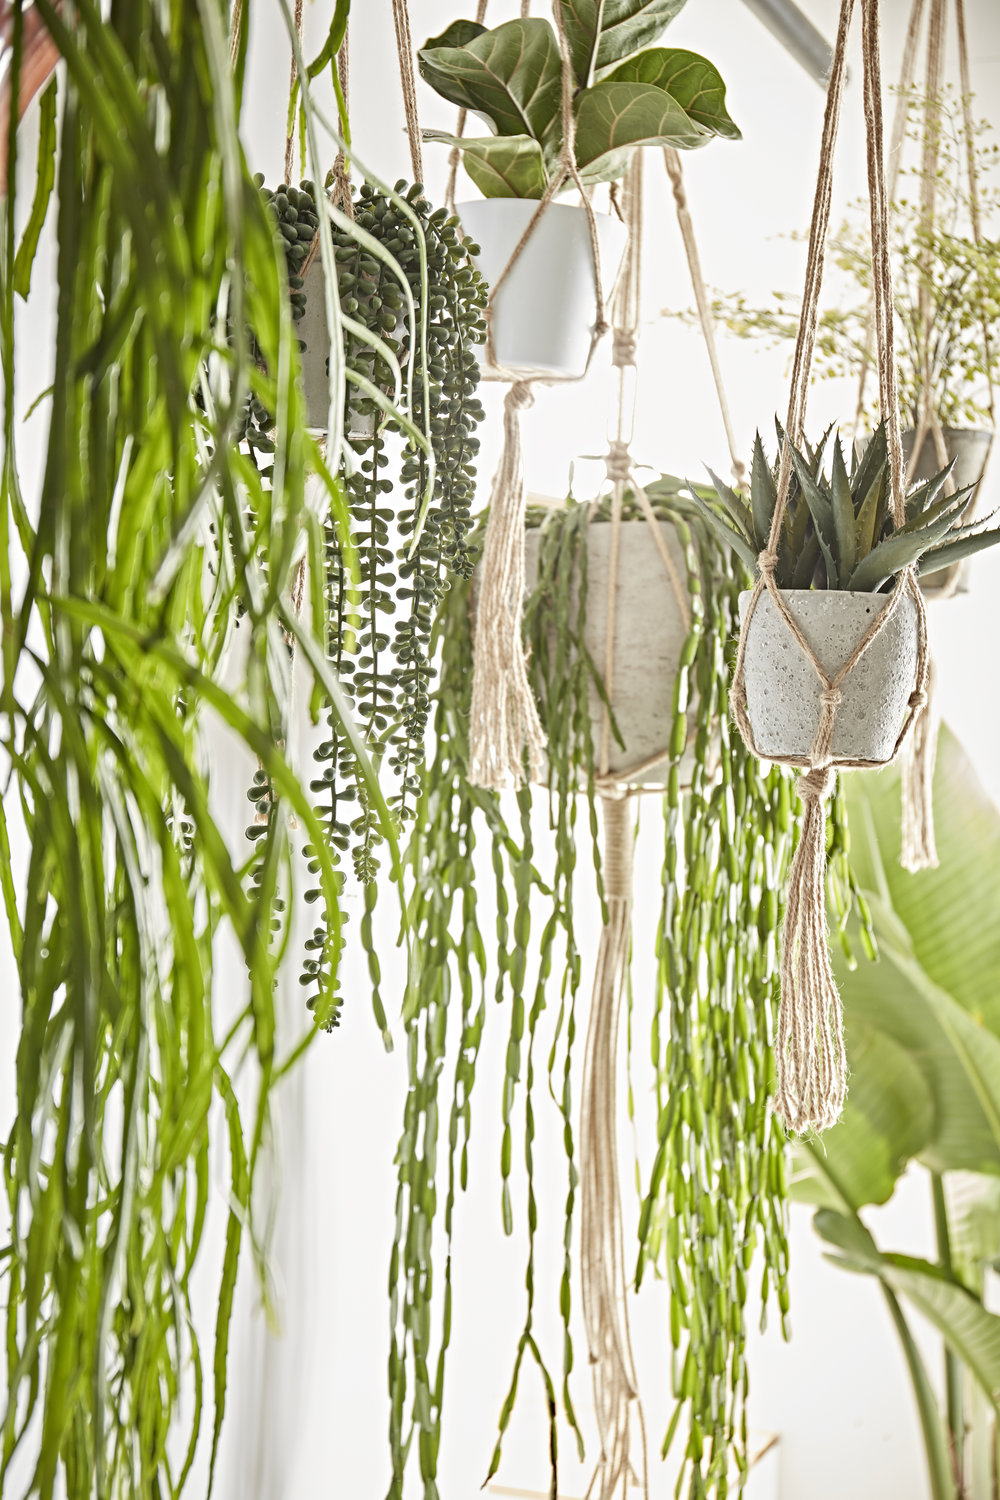 Plant Life - The trend for flora, ferns, succulents, cacti and all things green, lush and tropical continues to grow in popularity across interiors and interior design.